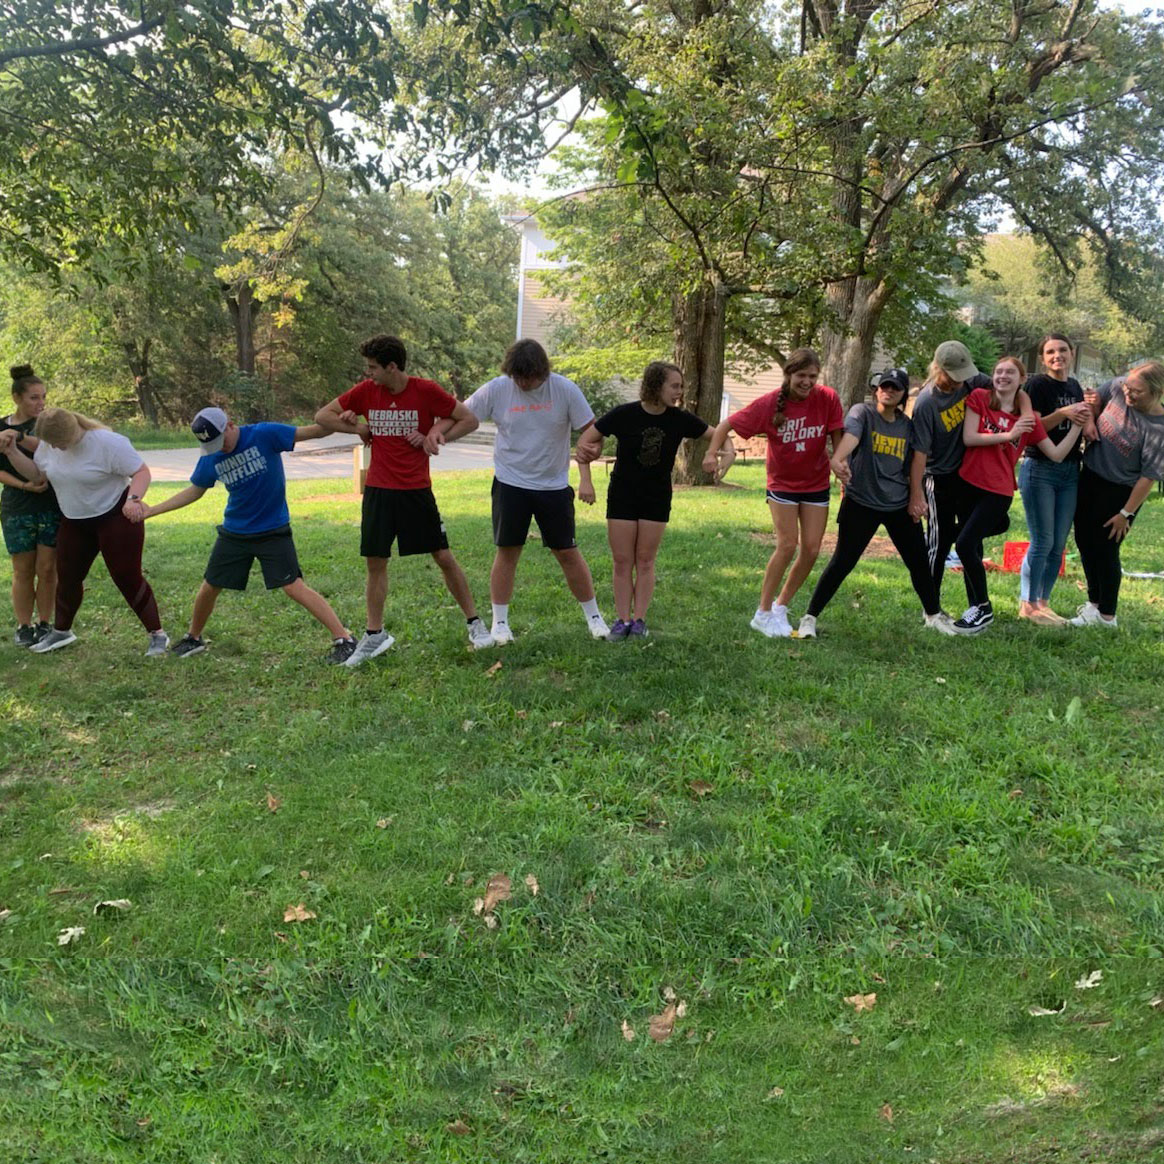 Kiewit Scholar group forming a human chain during a group activity.